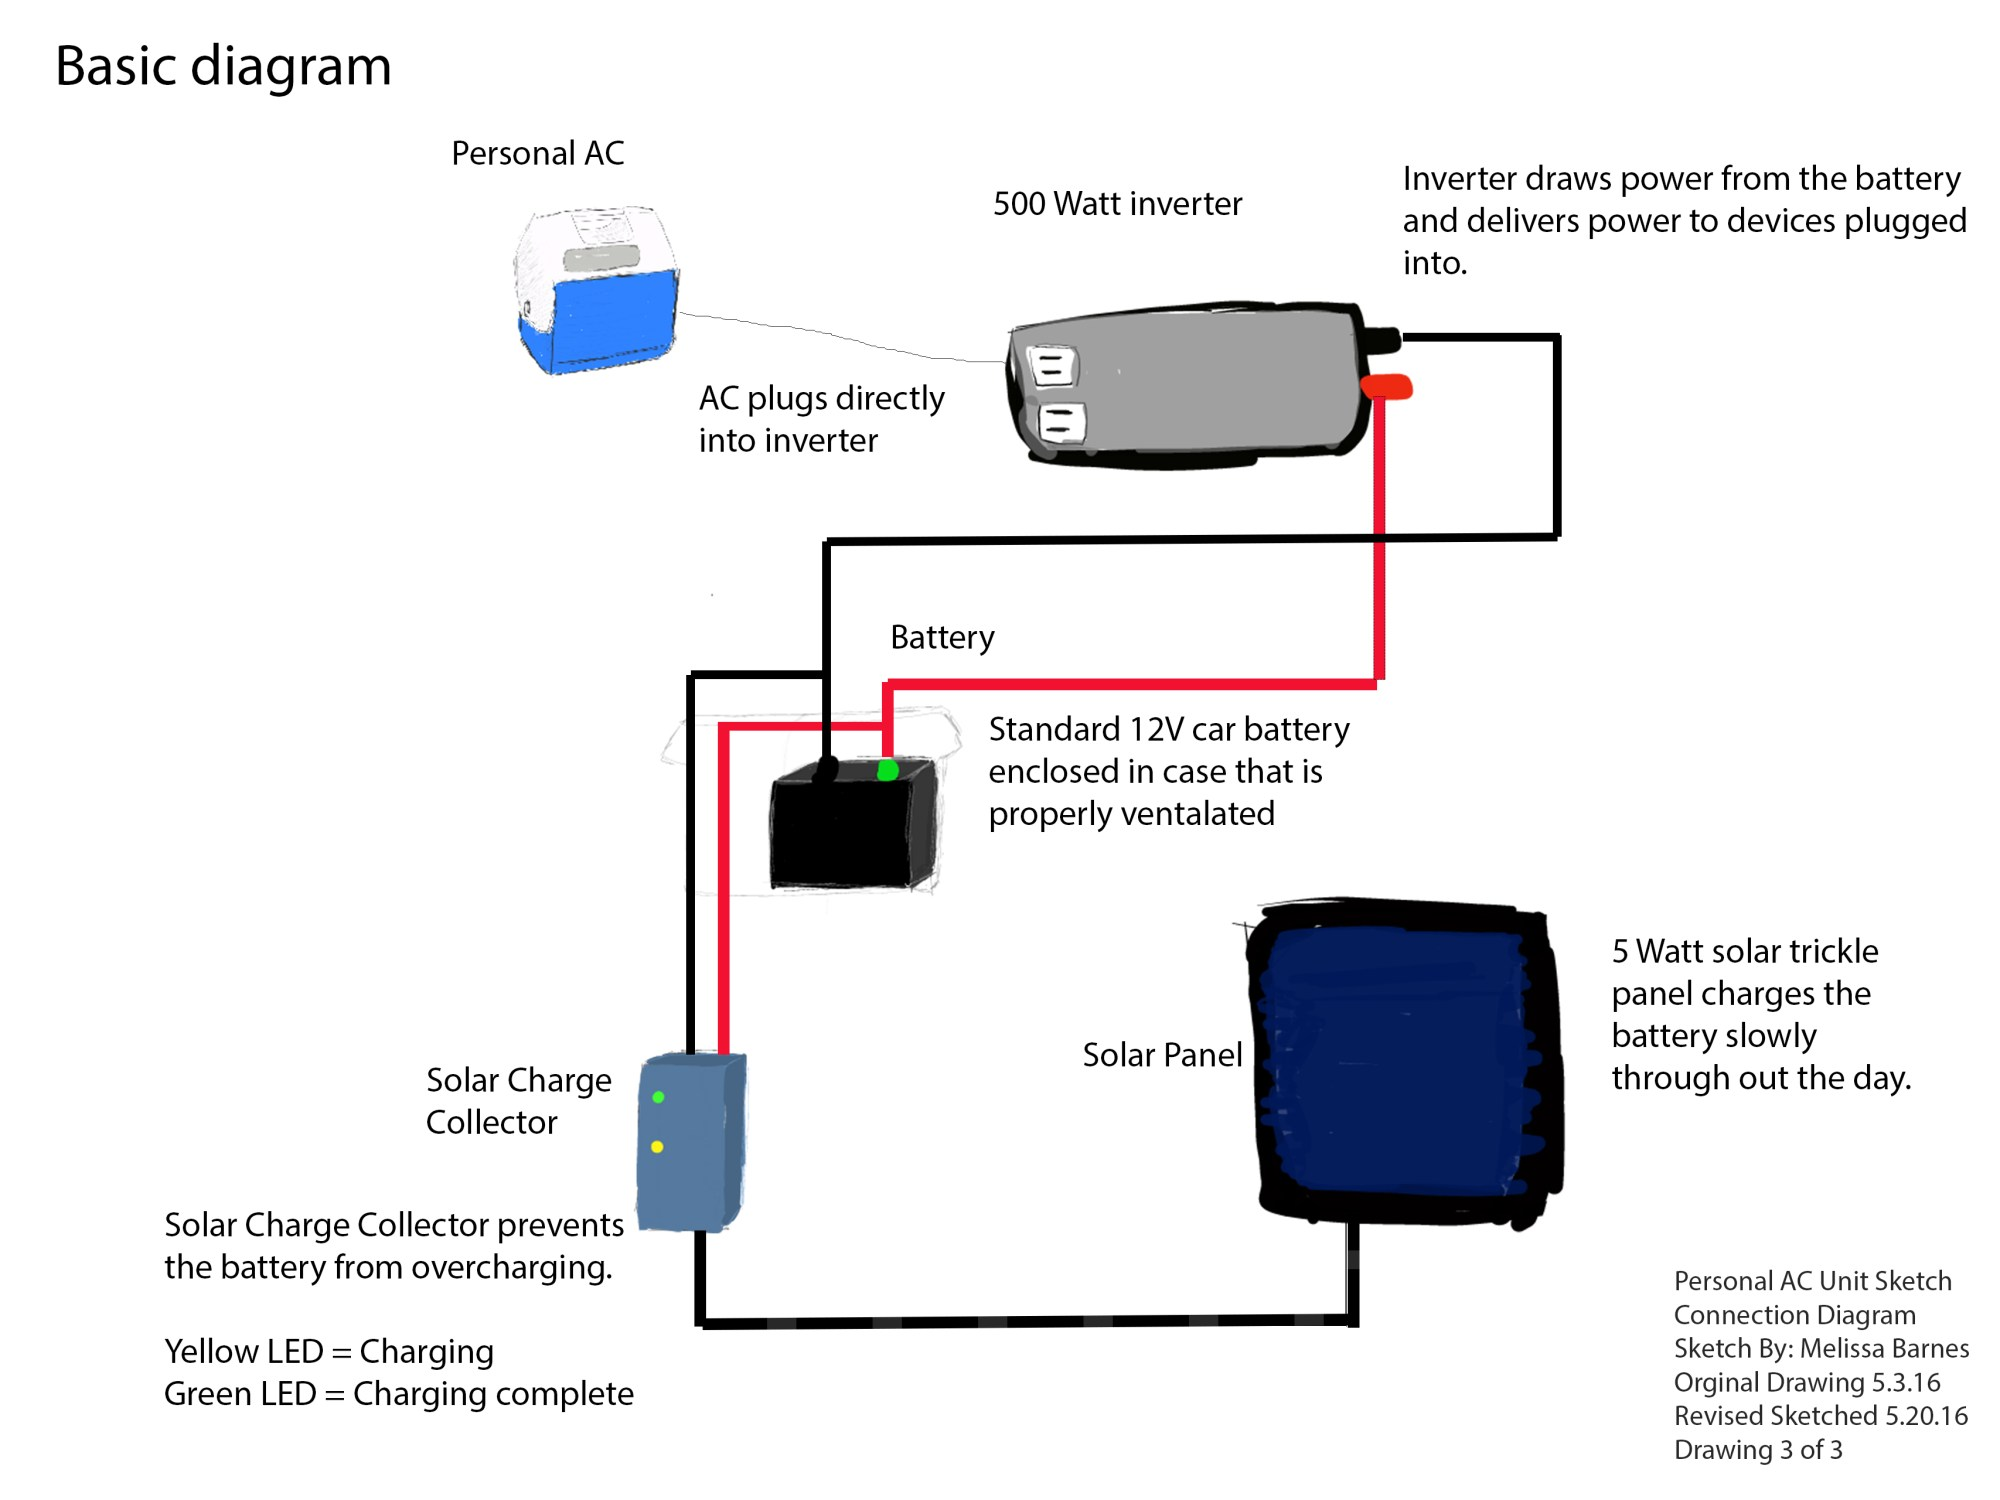 hight resolution of personal ac diagram 3 3